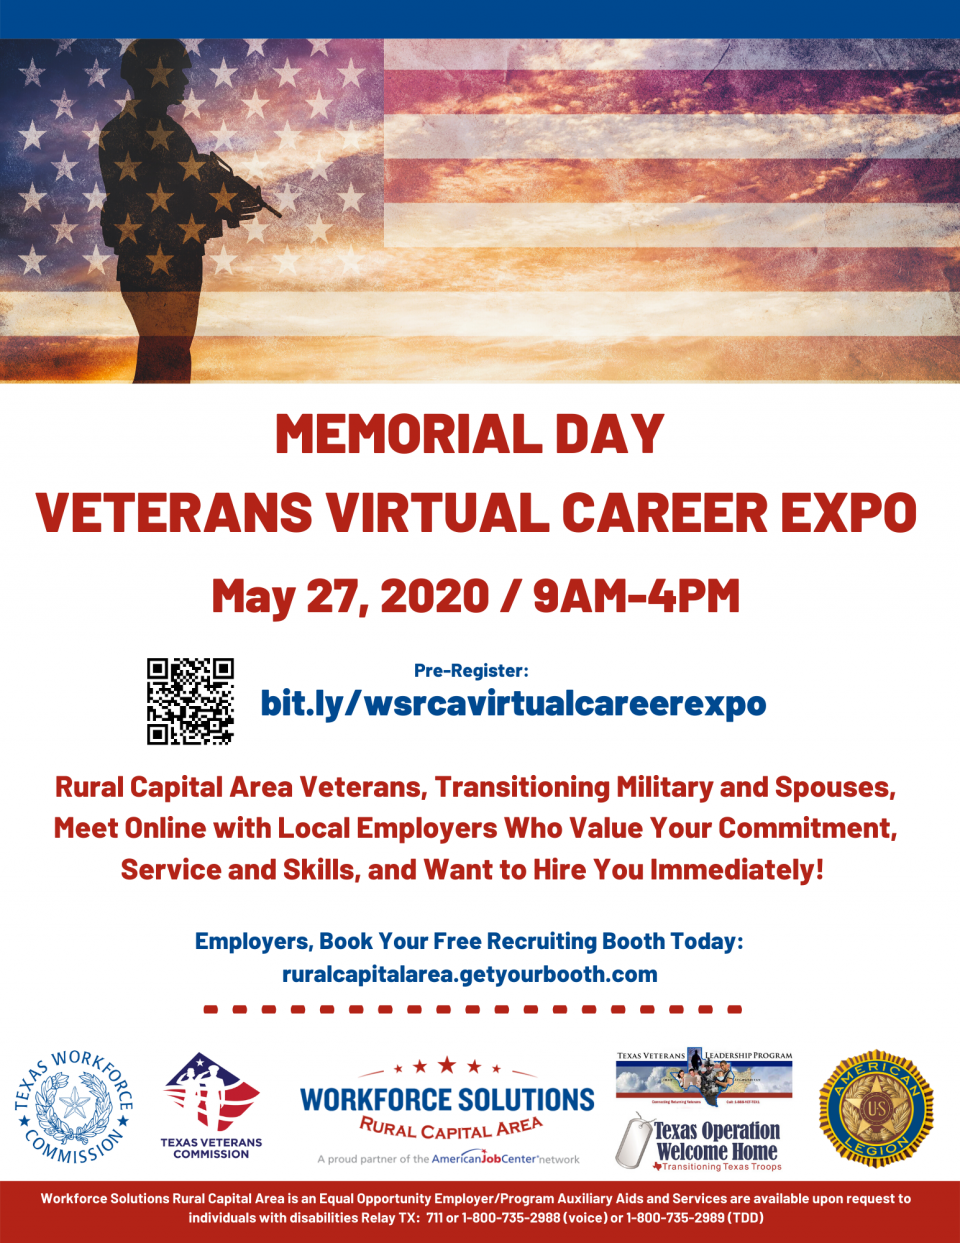 Central Texas Military Families Encouraged to Take Part in Memorial Day Veterans Virtual Career Expo on May 27